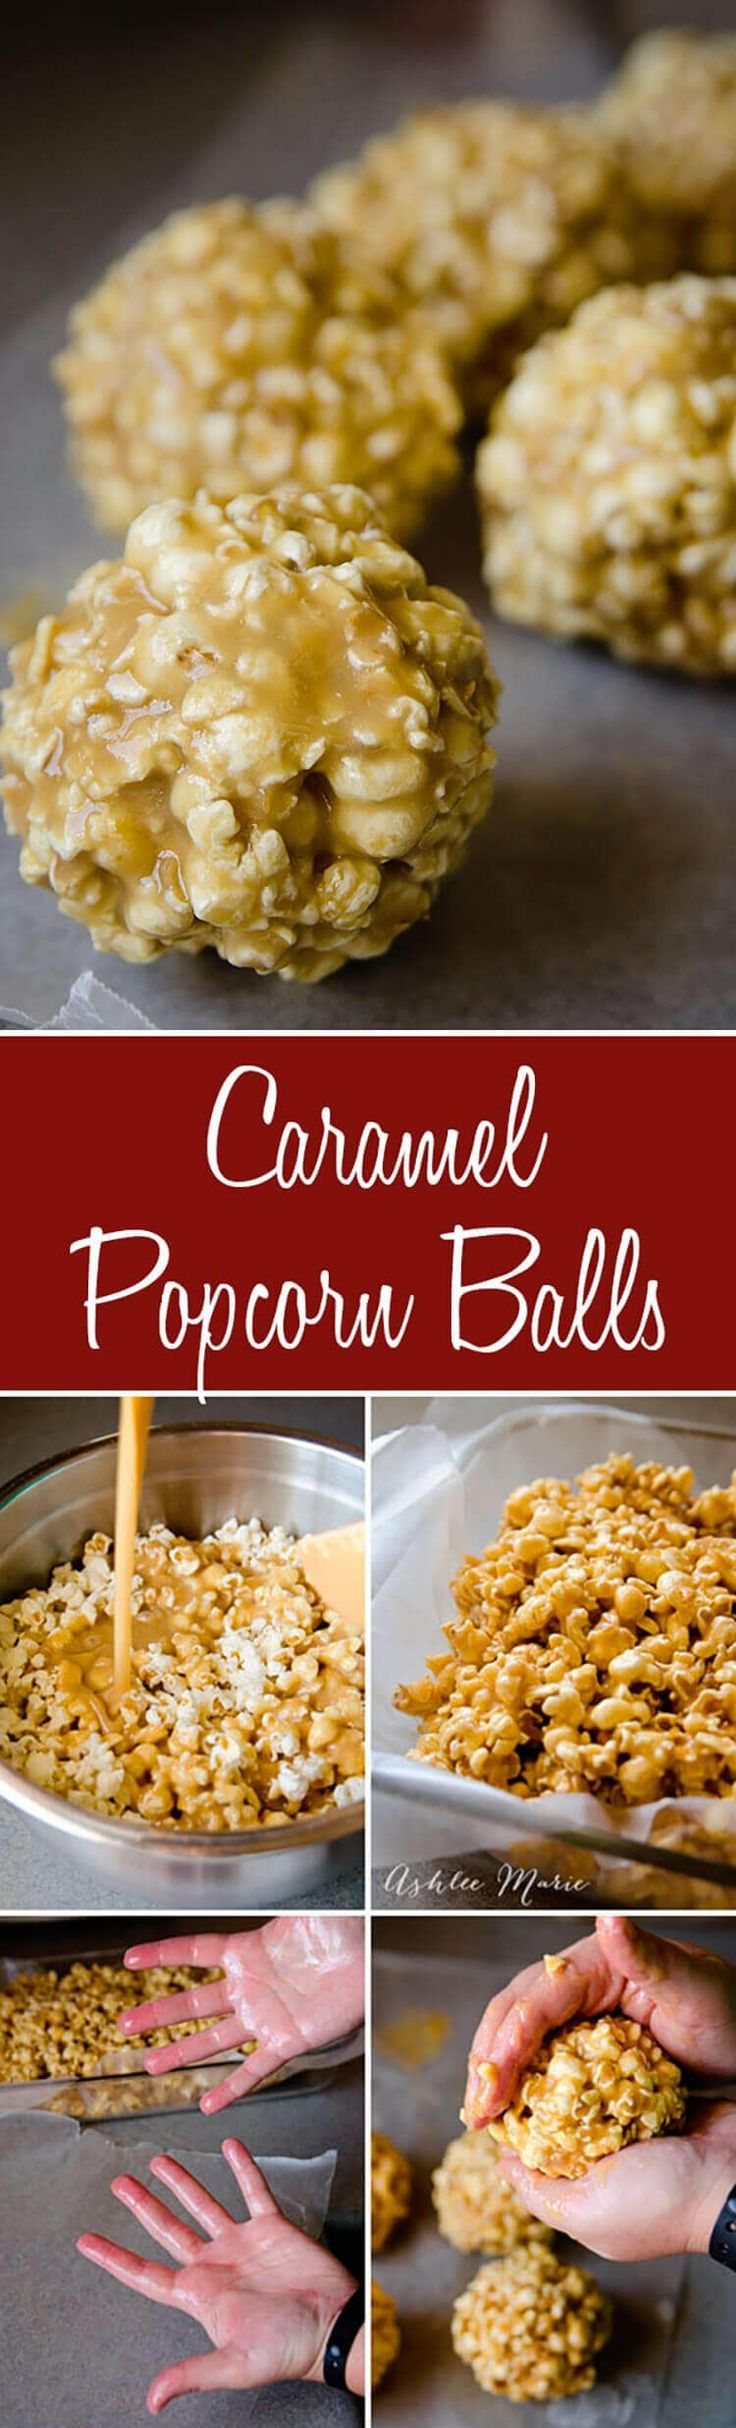 We love caramel popcorn at our house, this recipe is easy to make, let it cool and form into balls if you want to easily give some away as a gift, full video tutorial to hel